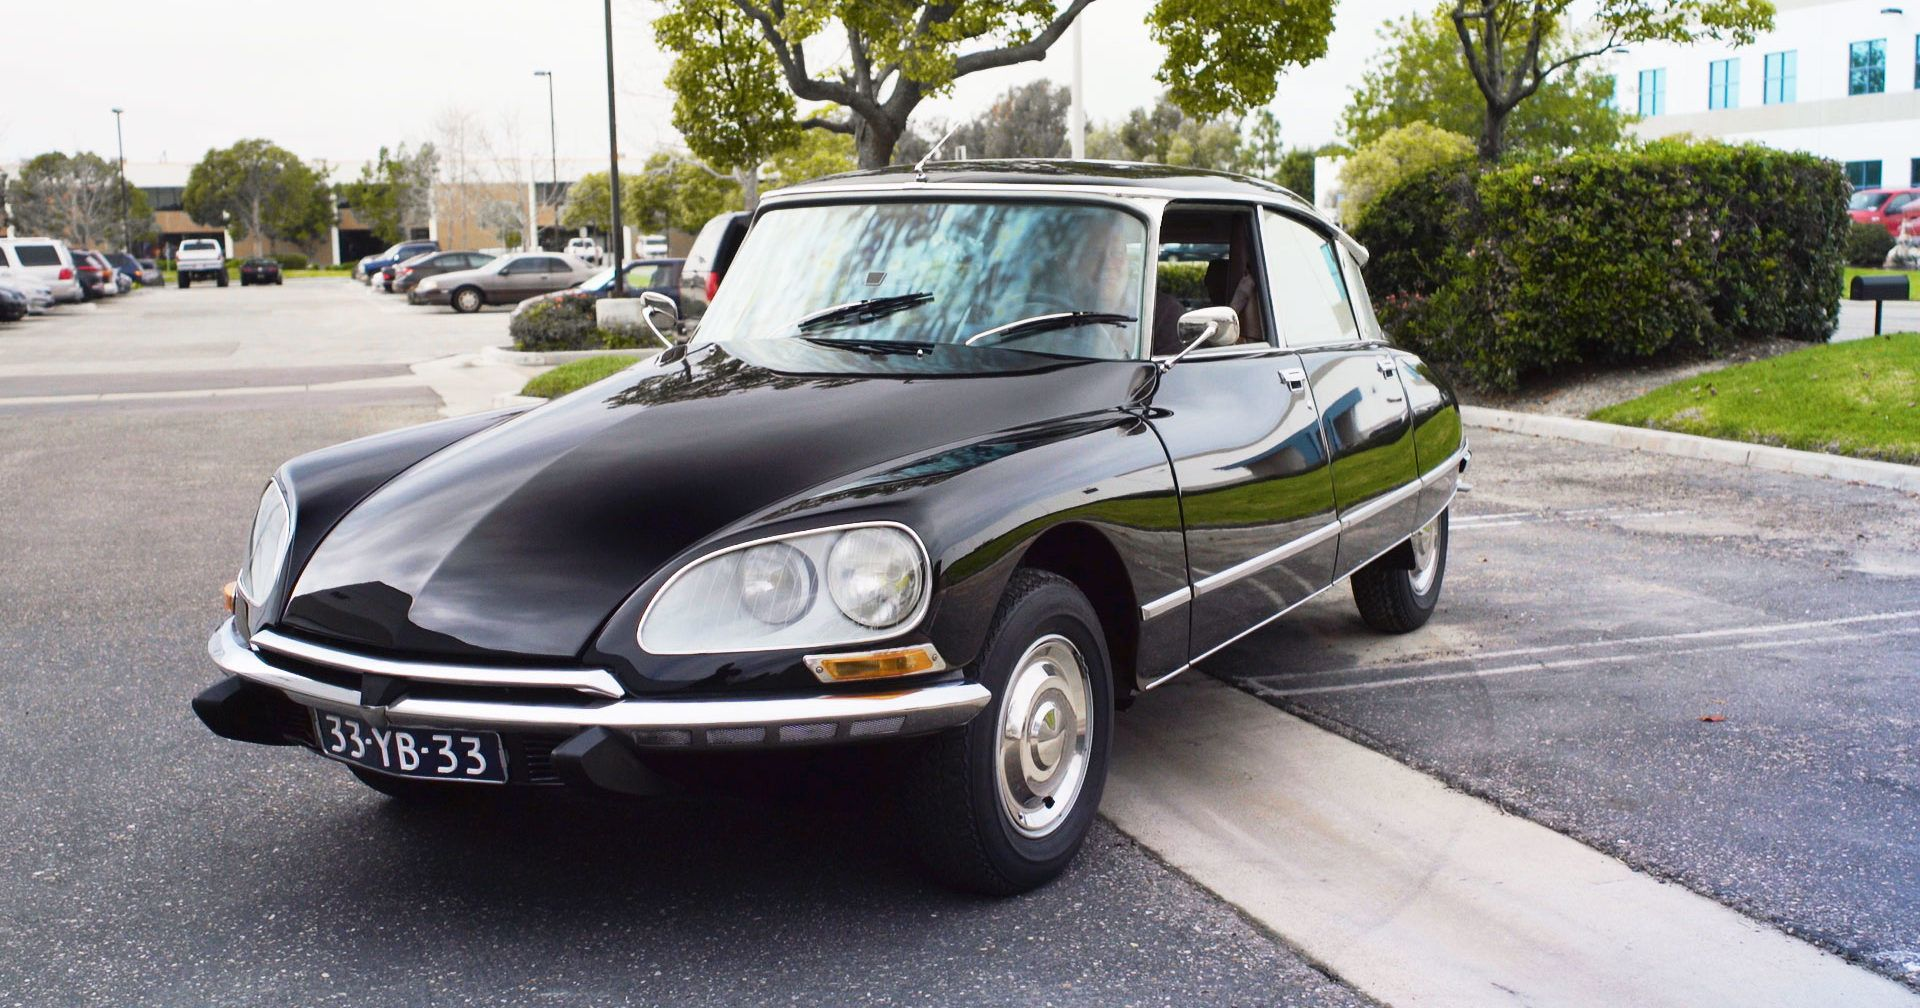 The 1955 Citroen DS Is The Auto Industryu0027s Platypus: Bizarre, Delightful,  And Inimitable